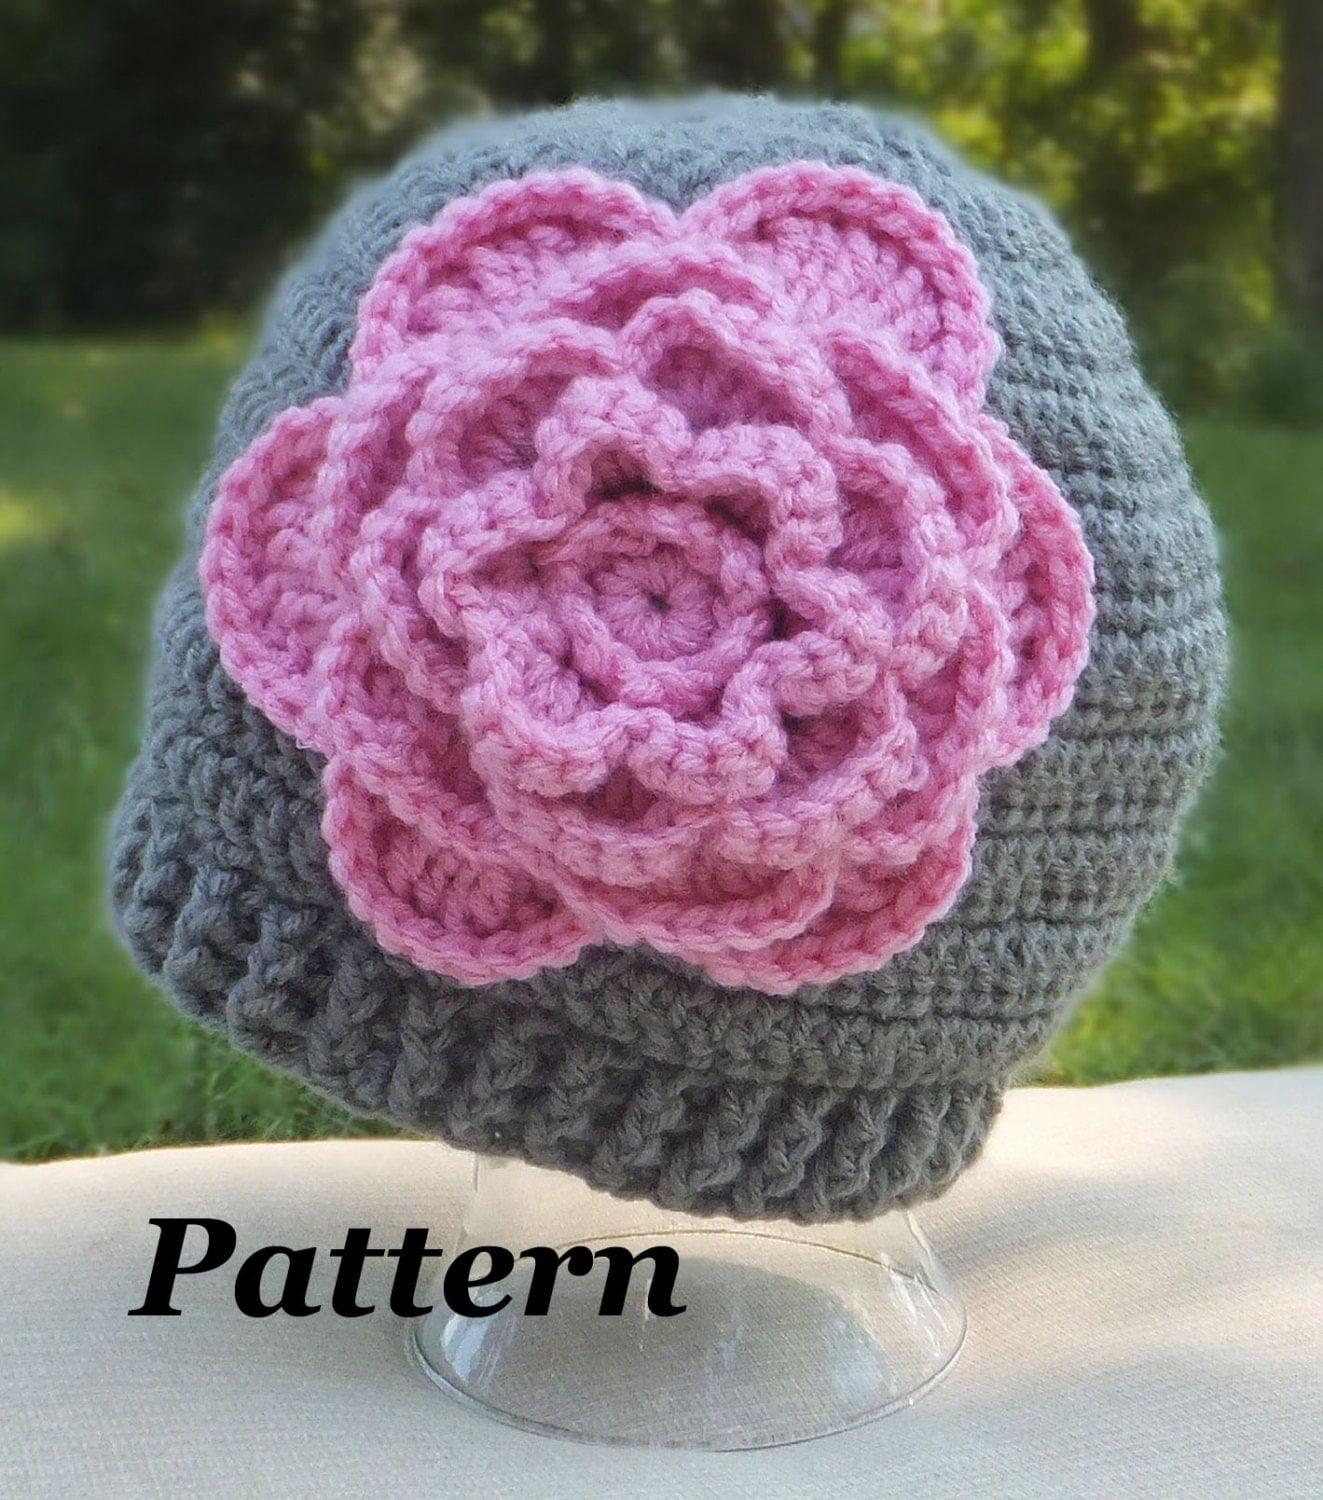 Crochet Beanie Pattern With Flower : CROCHET PATTERN: Bloomin Beanie Flower Hat by ...